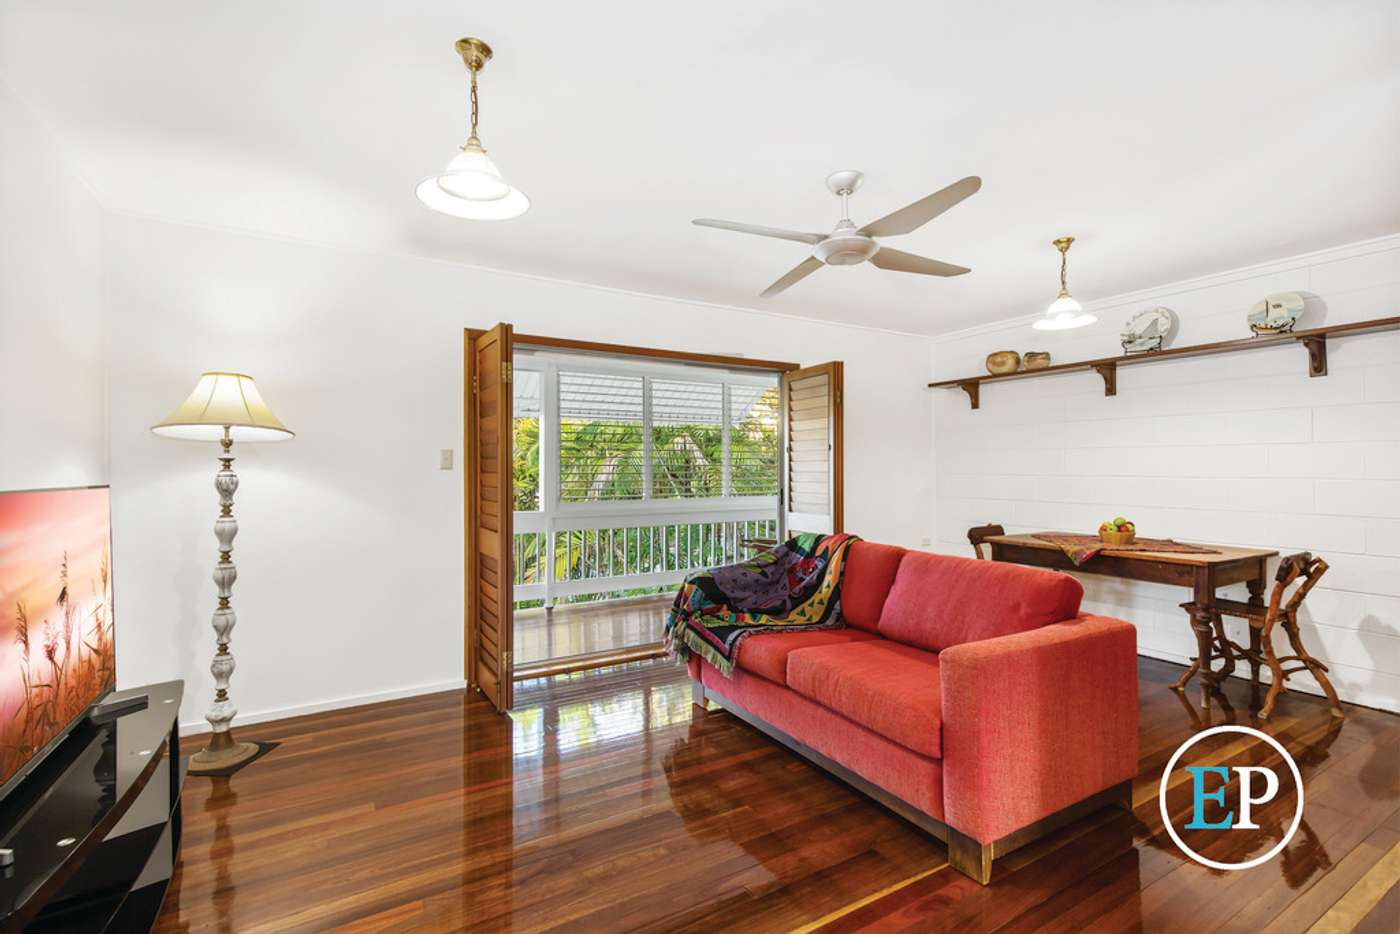 Fifth view of Homely house listing, 72 Eyre Street, North Ward QLD 4810